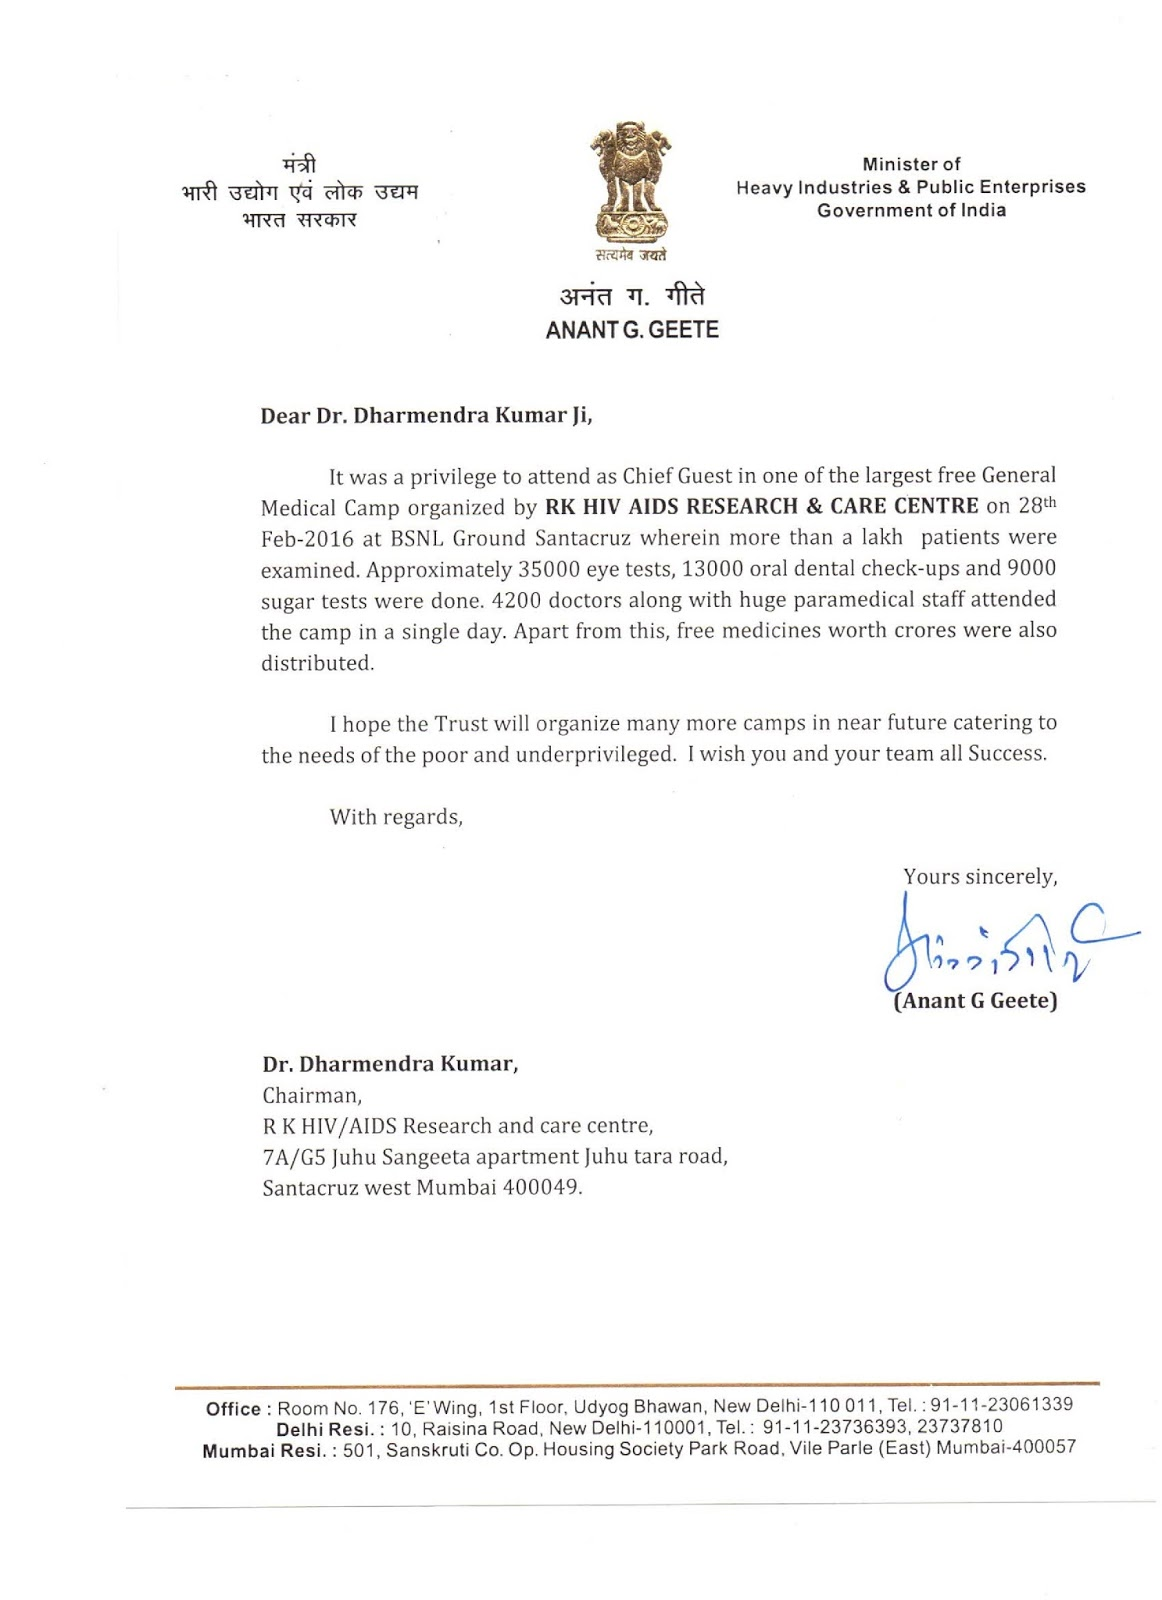 Appreciation letter to rk hiv aids research and care centre appreciation letter by minister of heavy industries public interprises goverment of india shri anant g geete to rk hiv aids research and care centre for spiritdancerdesigns Image collections